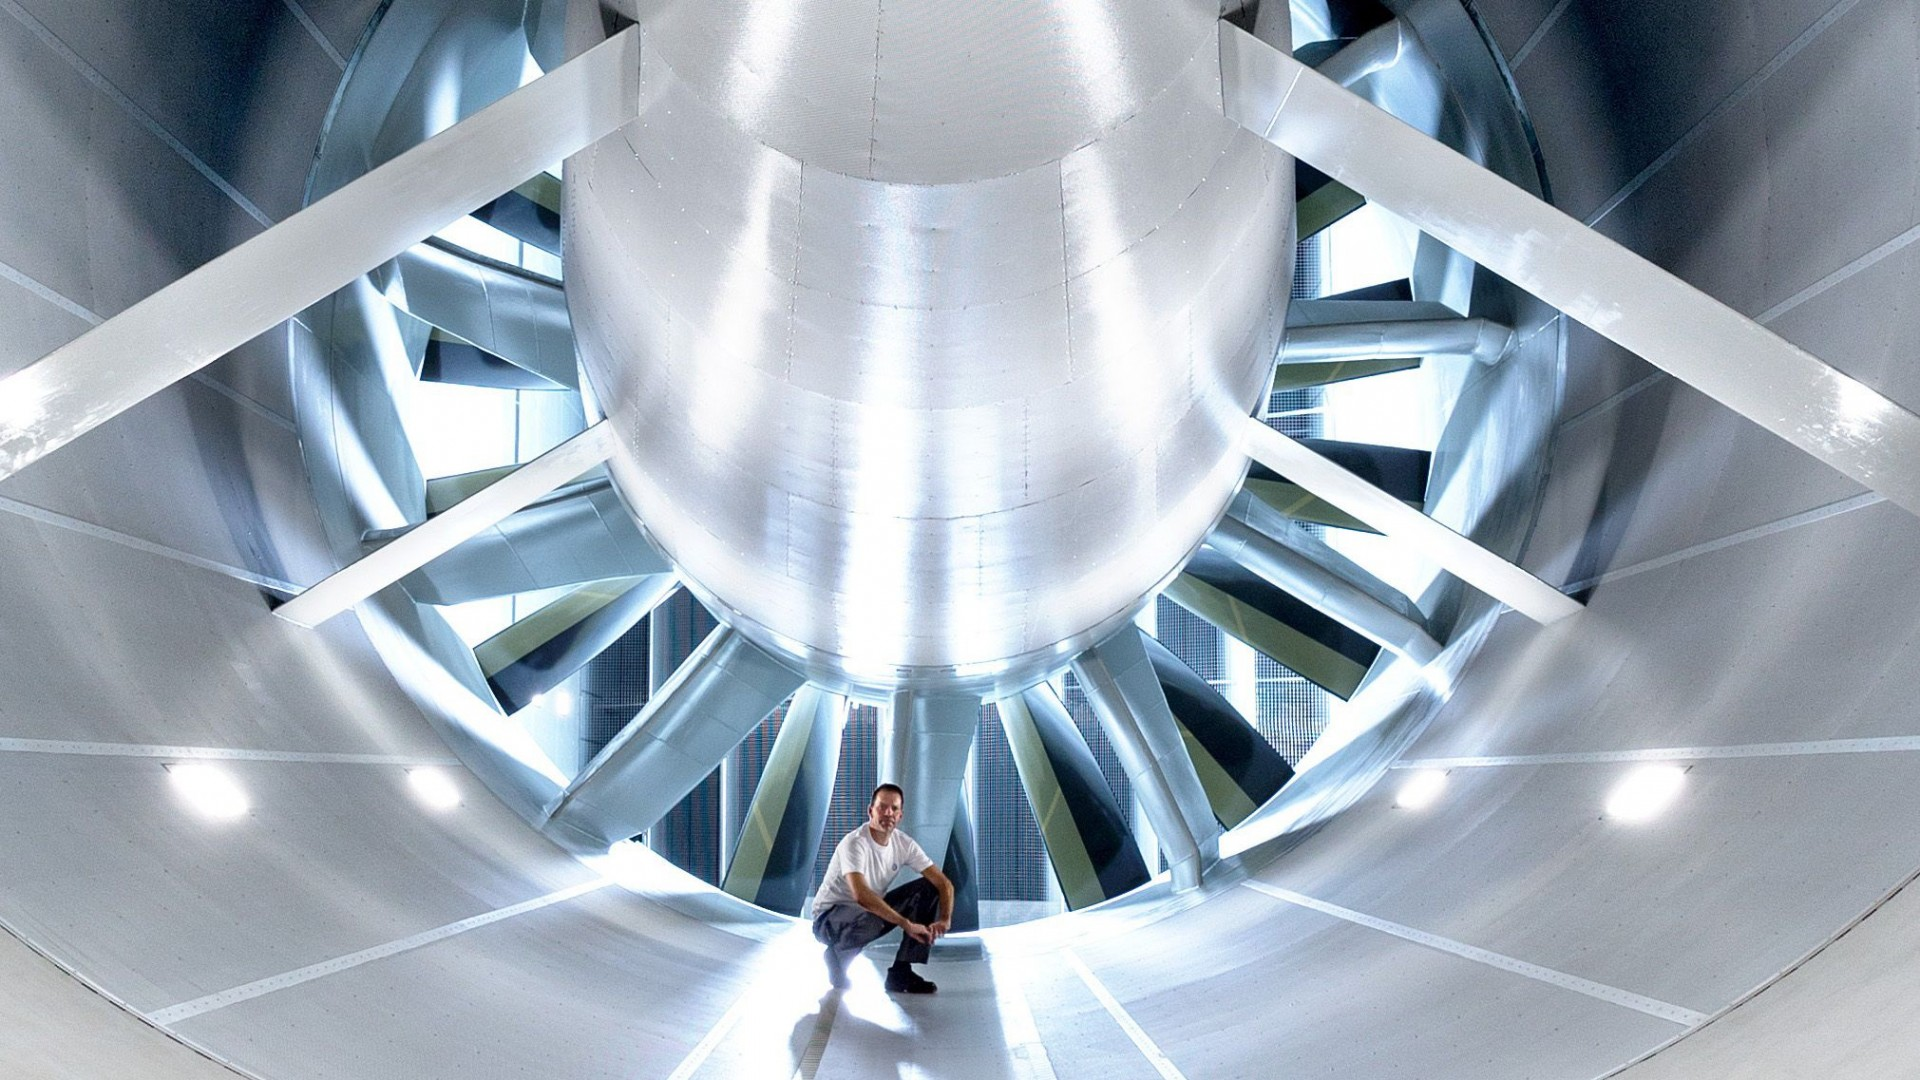 Volkswagen Wind Tunnel Efficiency Center